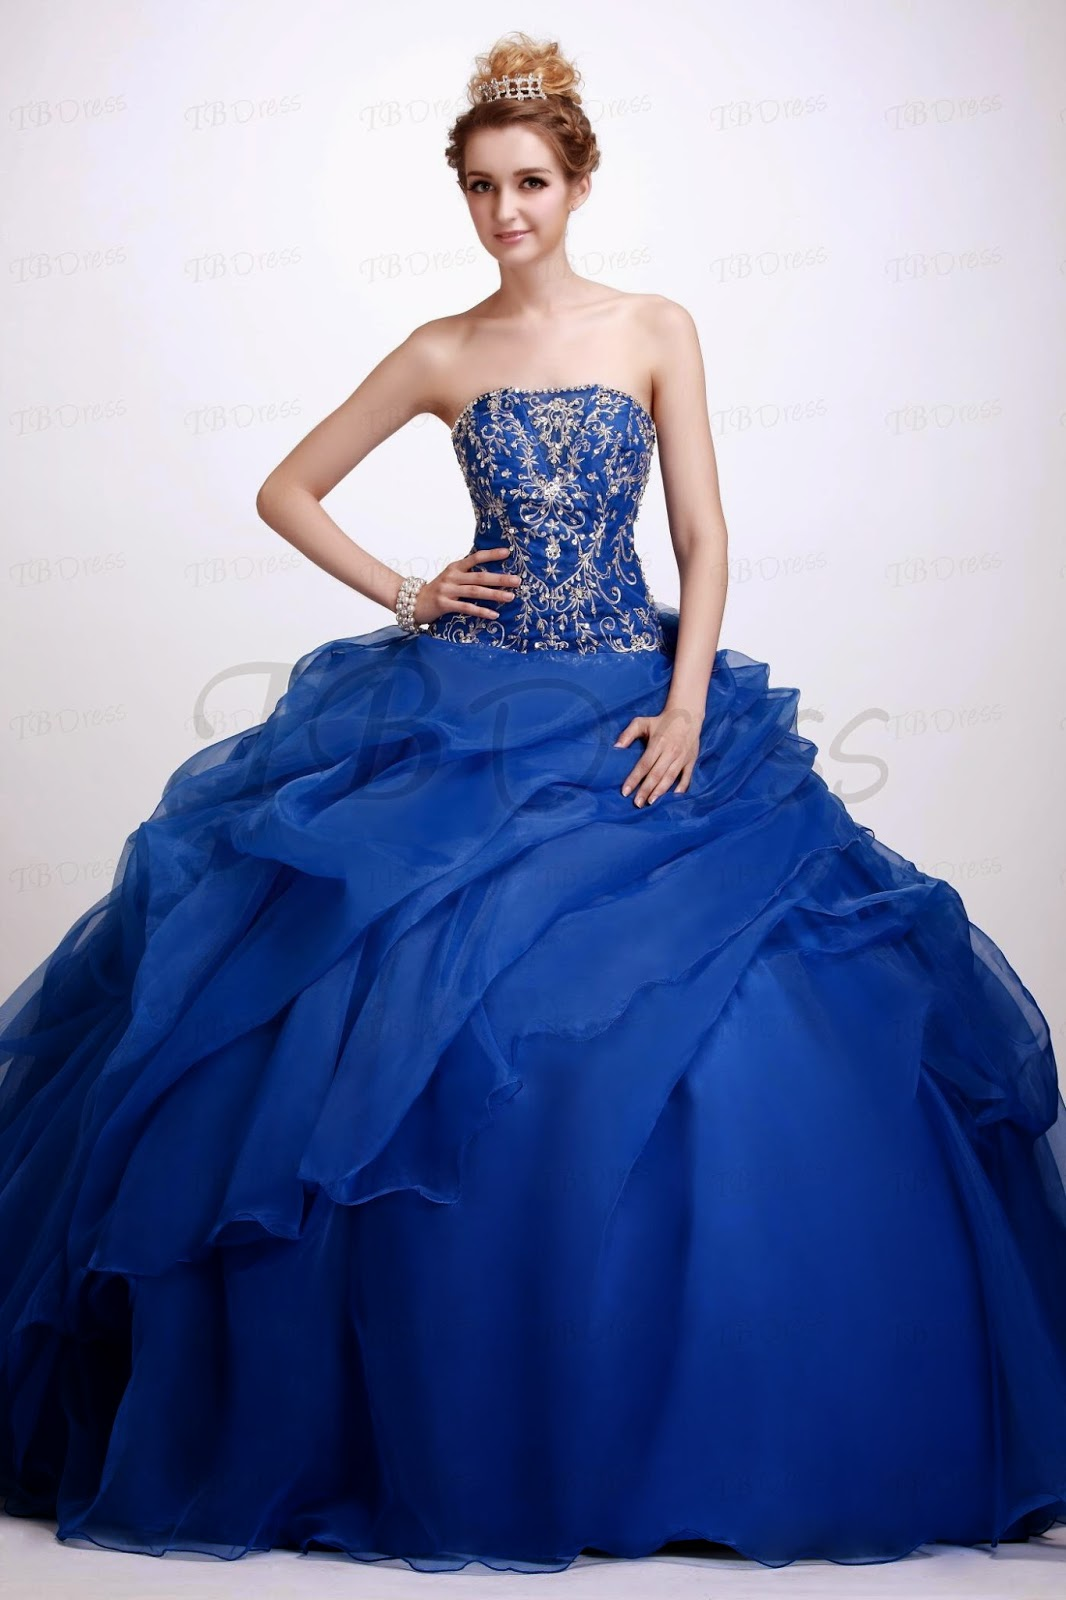 http://www.tbdress.com/product/Amazing-A-Line-Floor-Length-Strapless-Angerlikas-Quinceanera-Ball-Gown-Dress-9664535.html